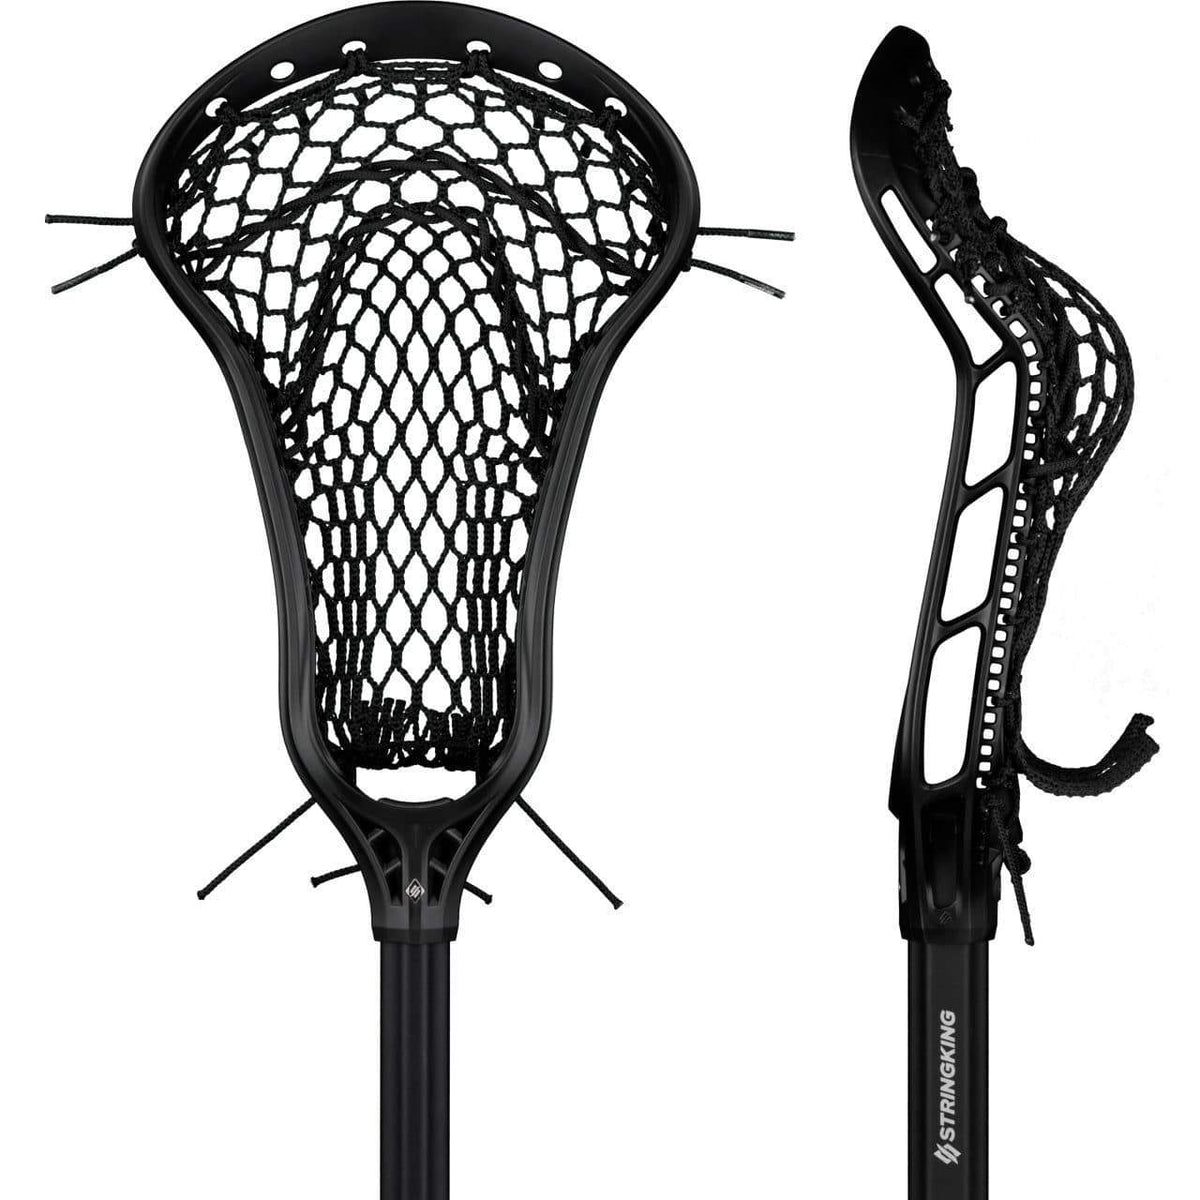 StringKing Complete 2 Pro Metal Offense Women's Lacrosse Stick with Metal 2 Shaft